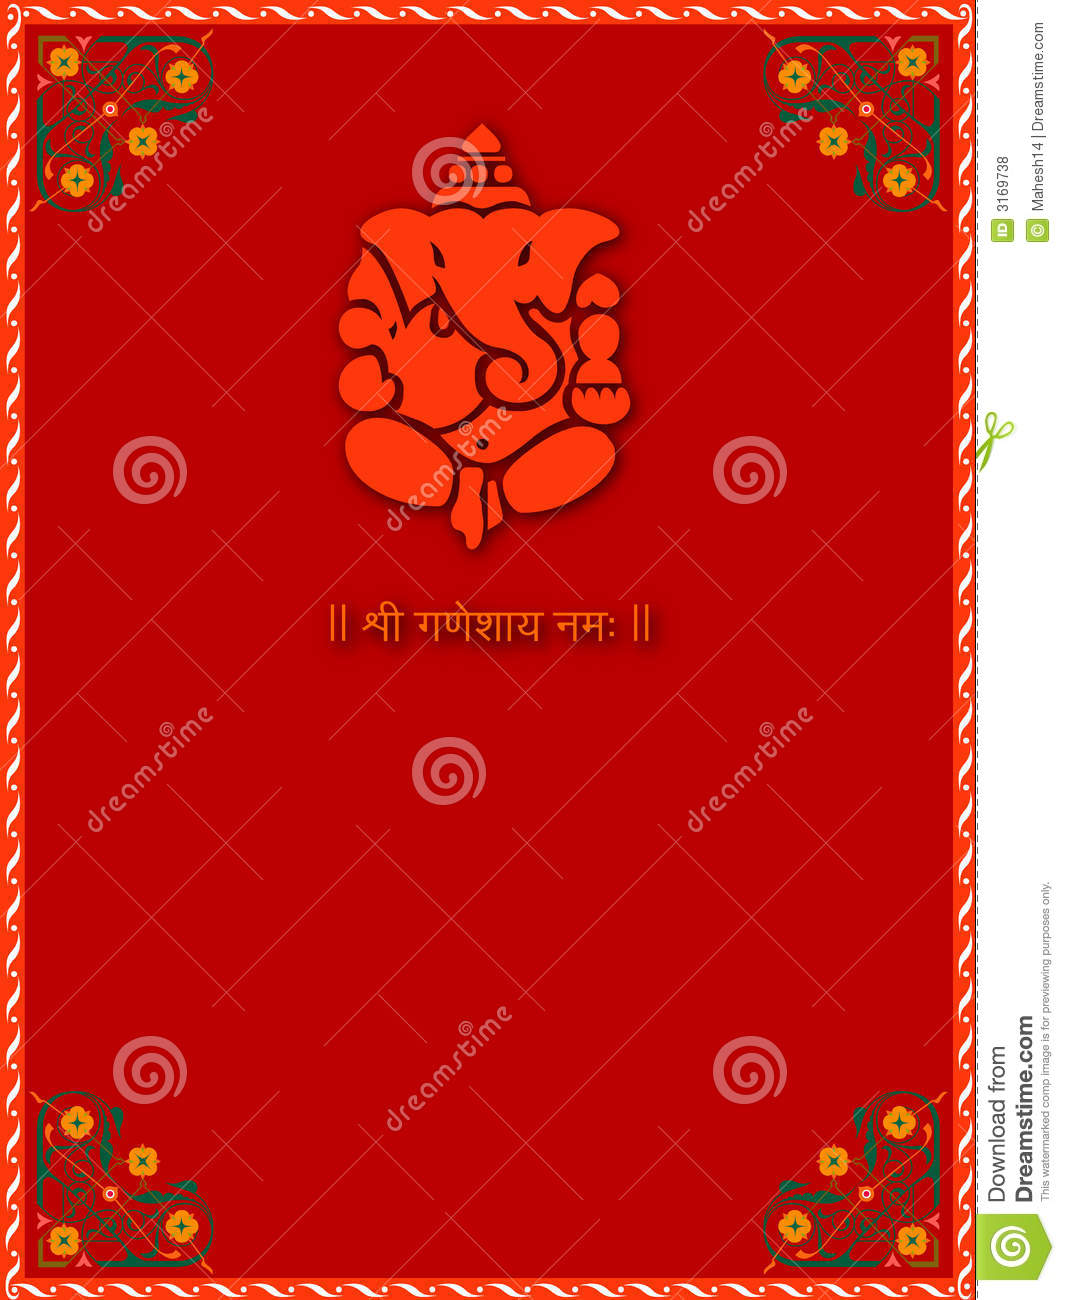 Shree Ganesha Card Template Royalty Free Stock Photos